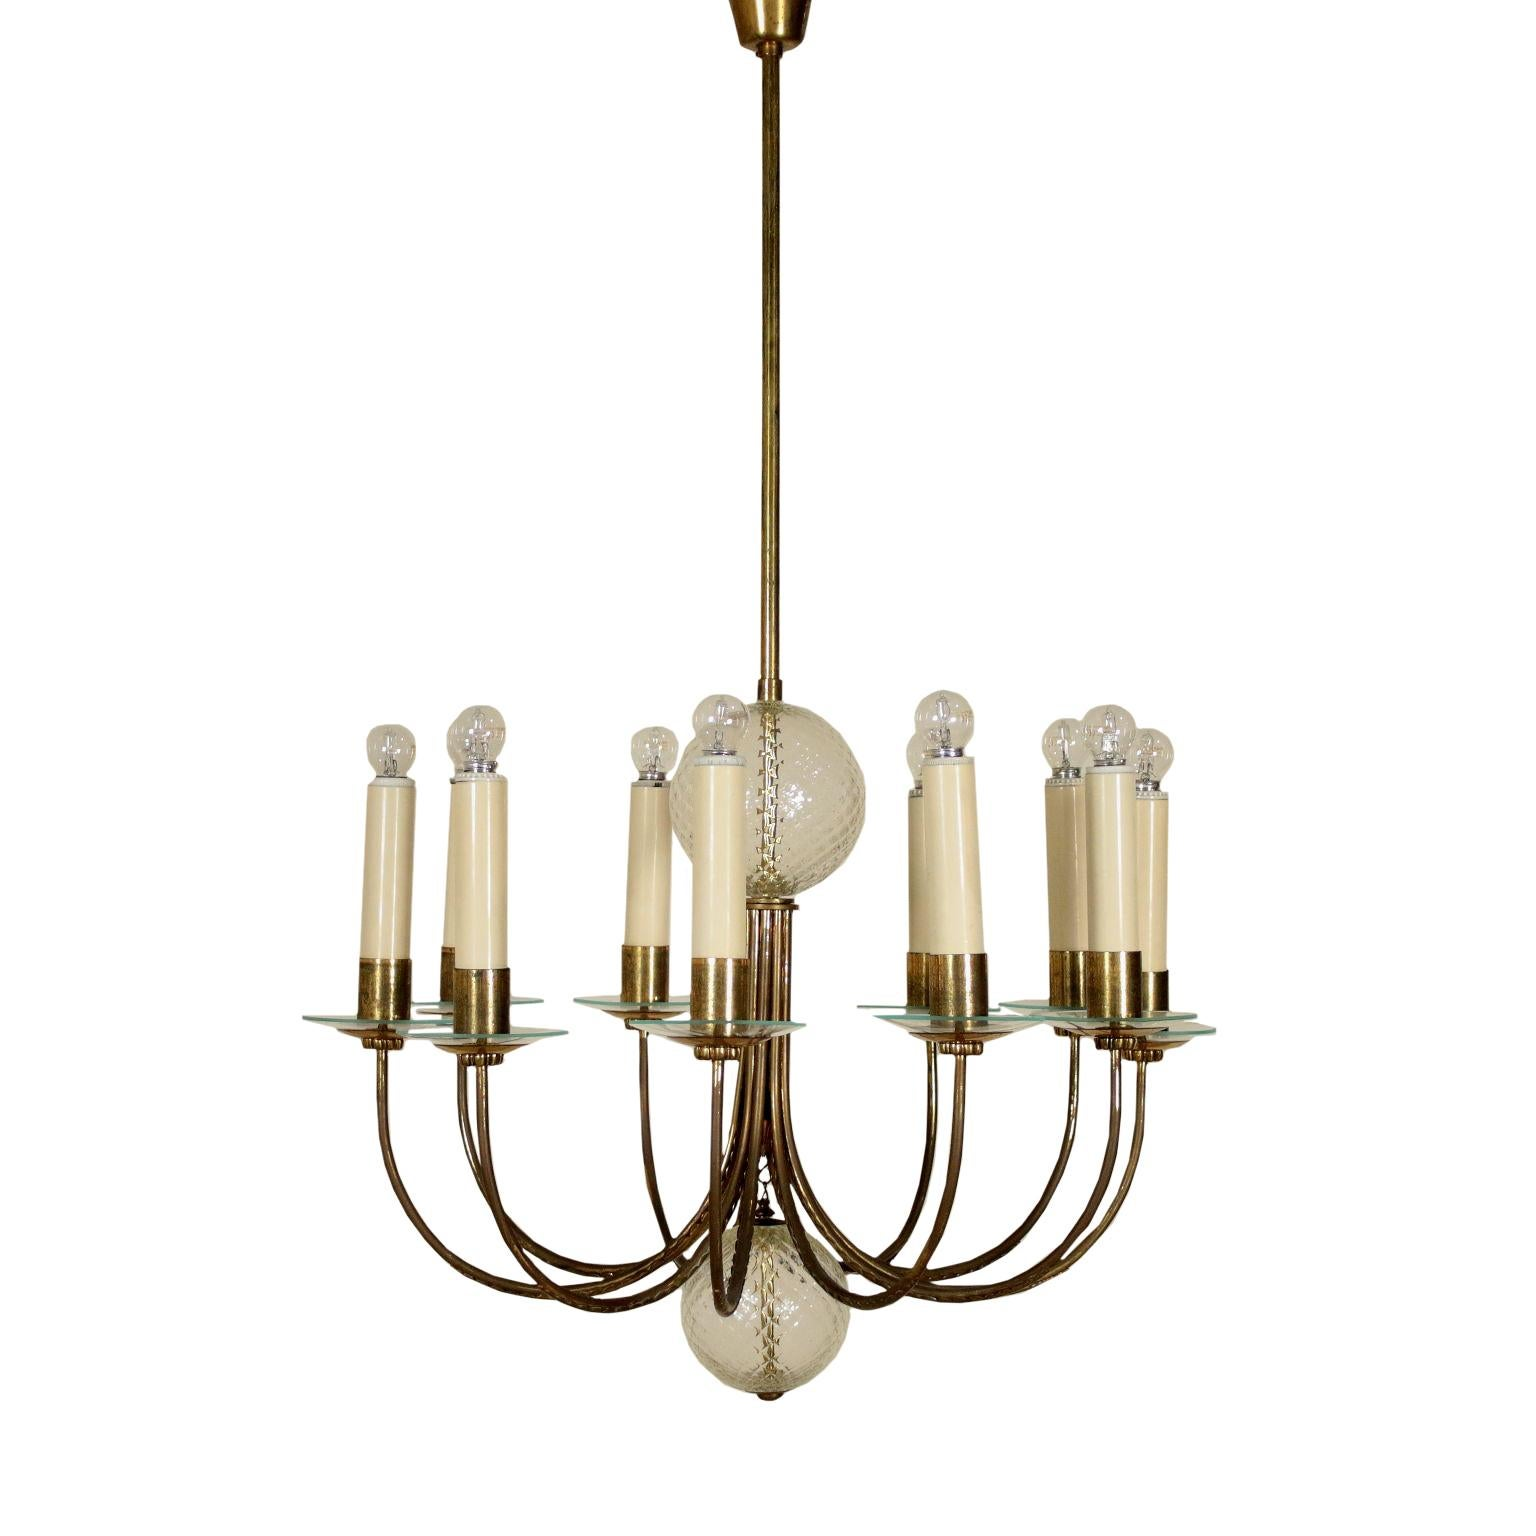 Ceiling Lamp Brass Glass Vintage, Italy, 1940s